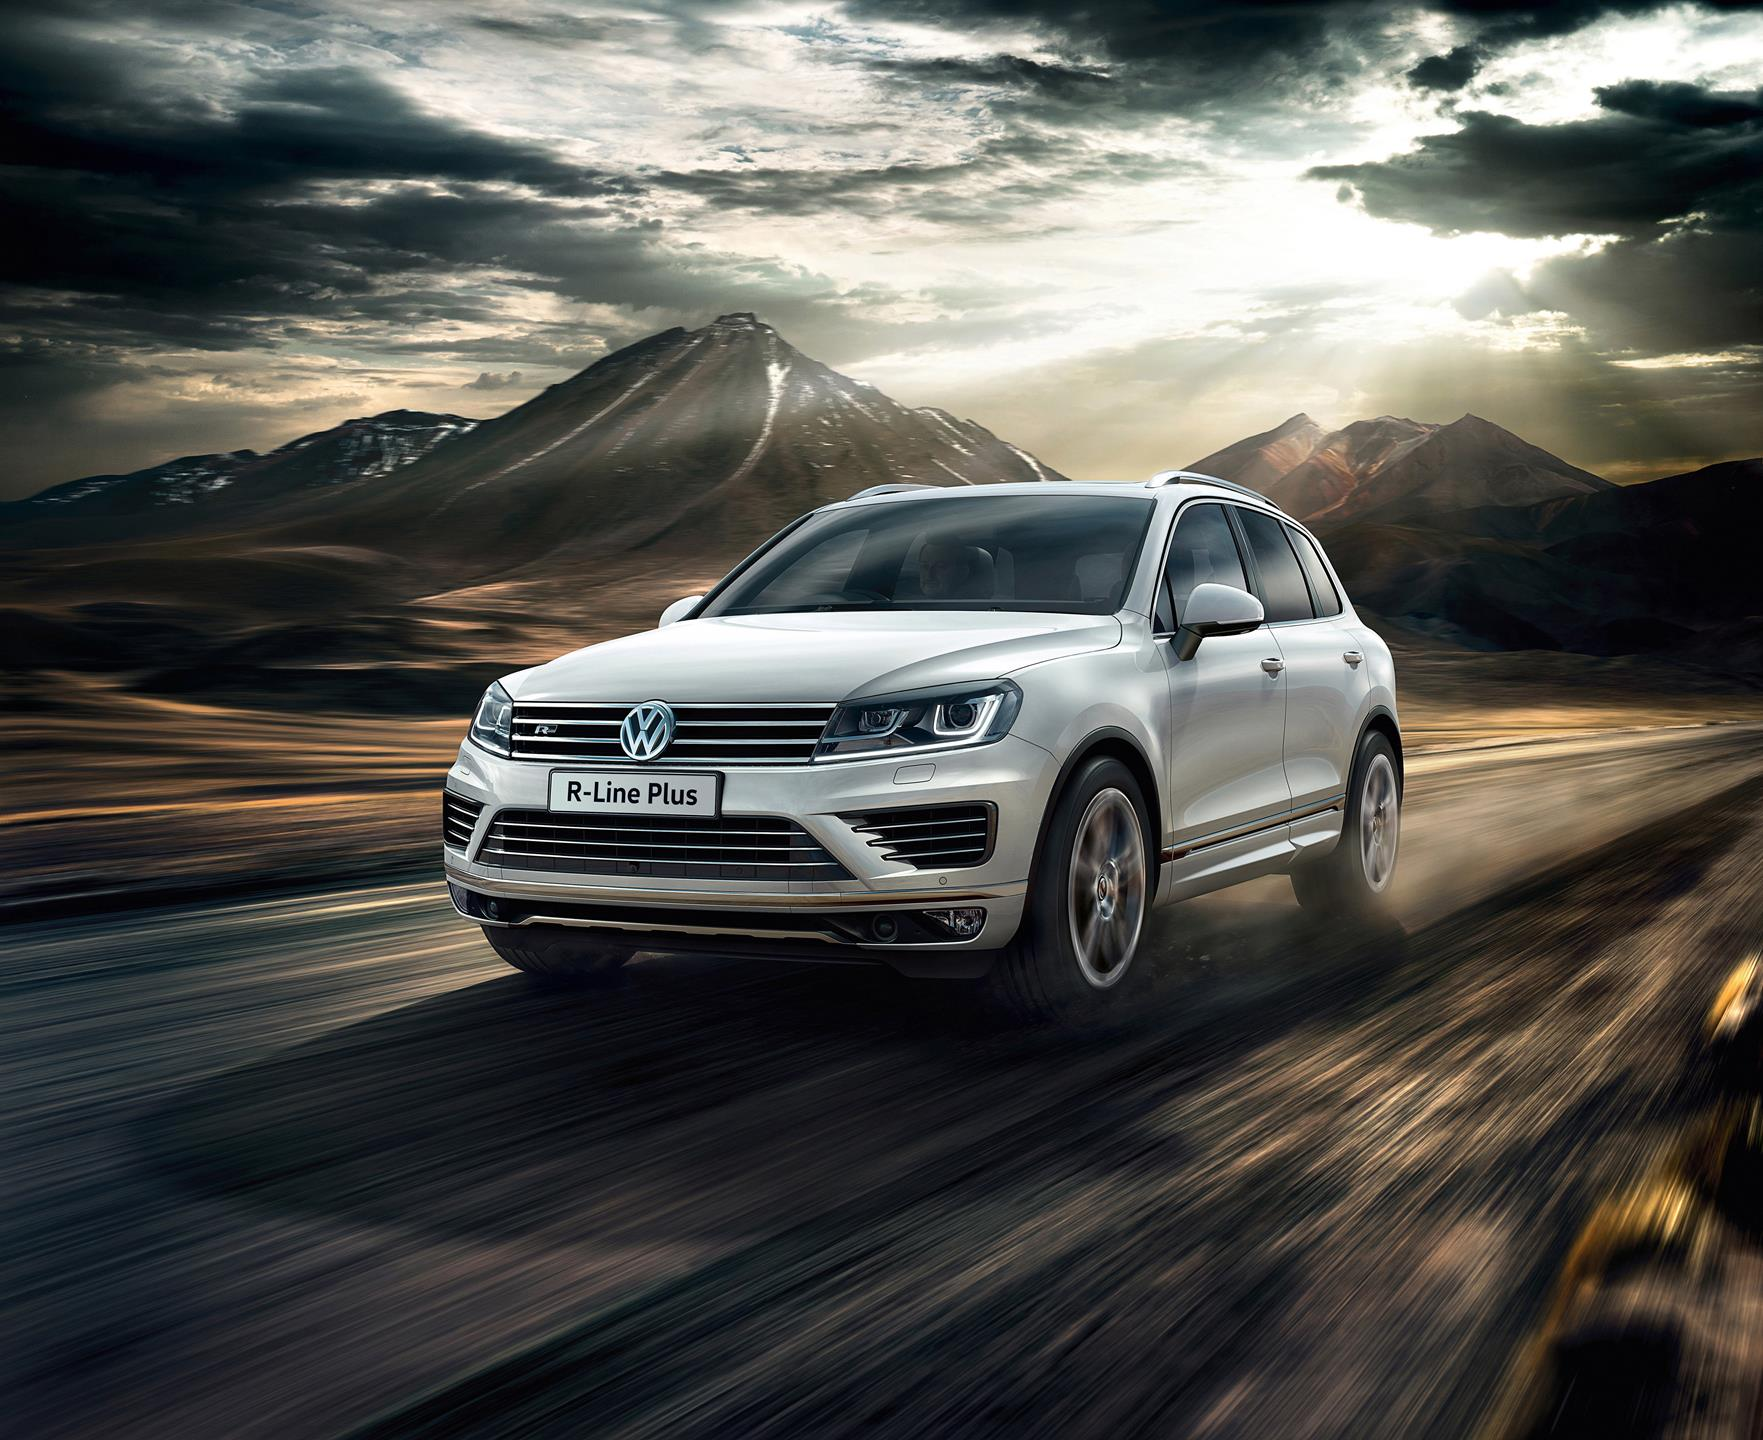 Dodge Mini Van >> 2016 Volkswagen Touareg R-Line Plus News and Information